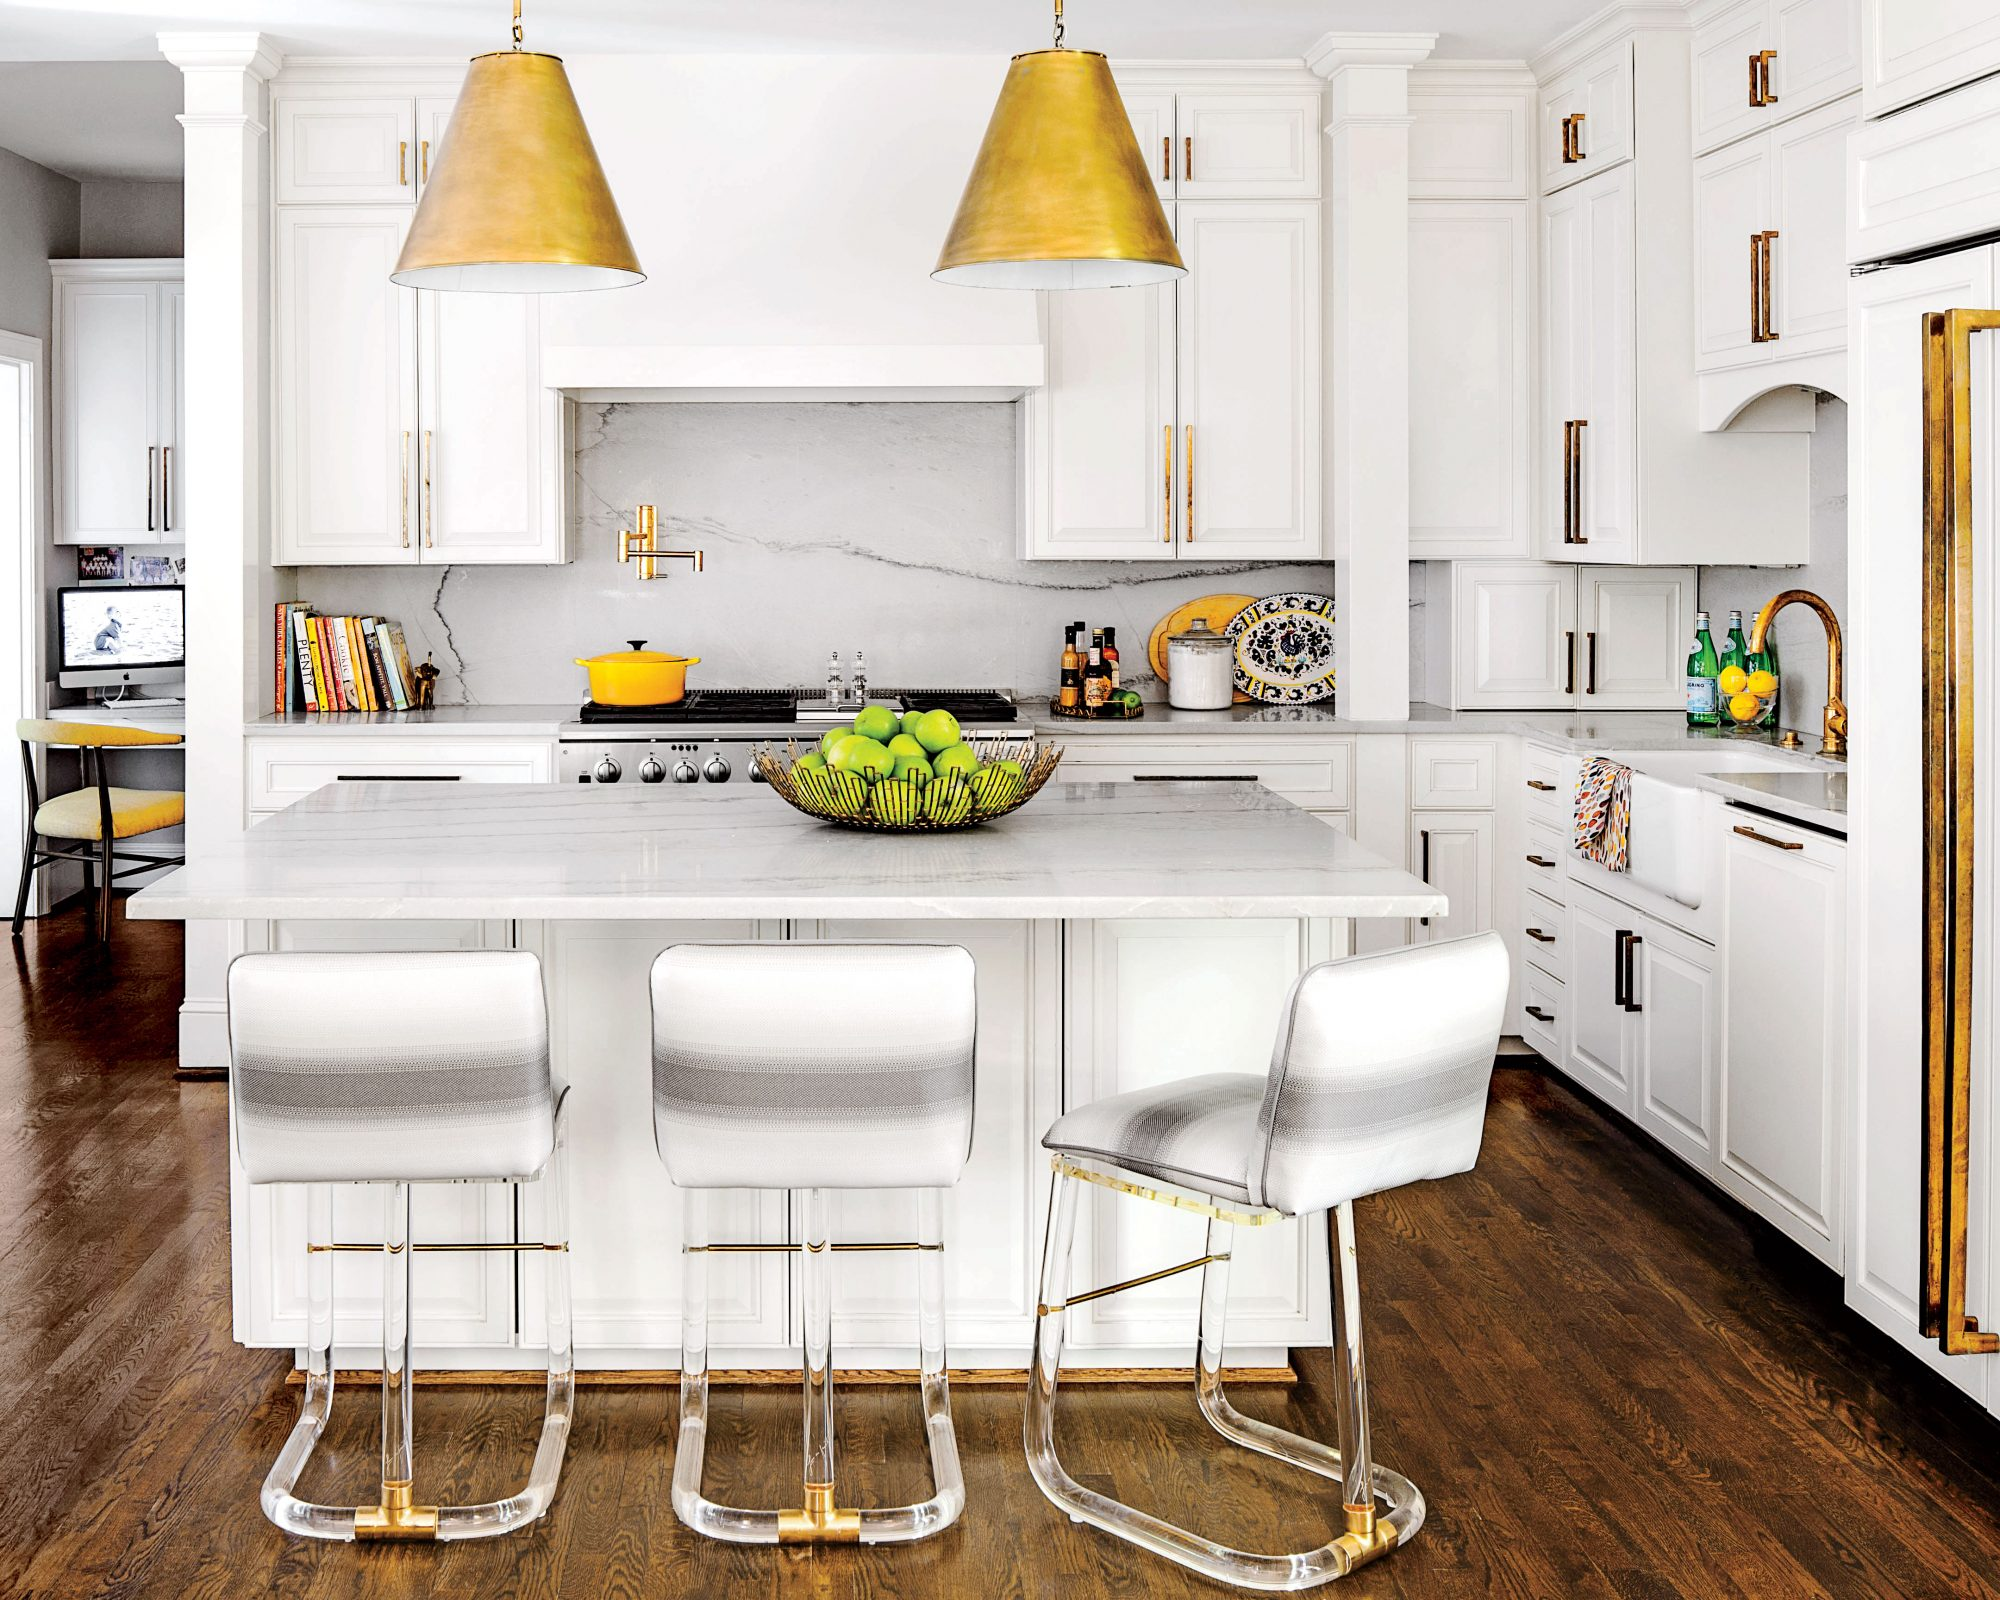 a to ways ugly pin kitchen rental style renter s kitchens countertop an